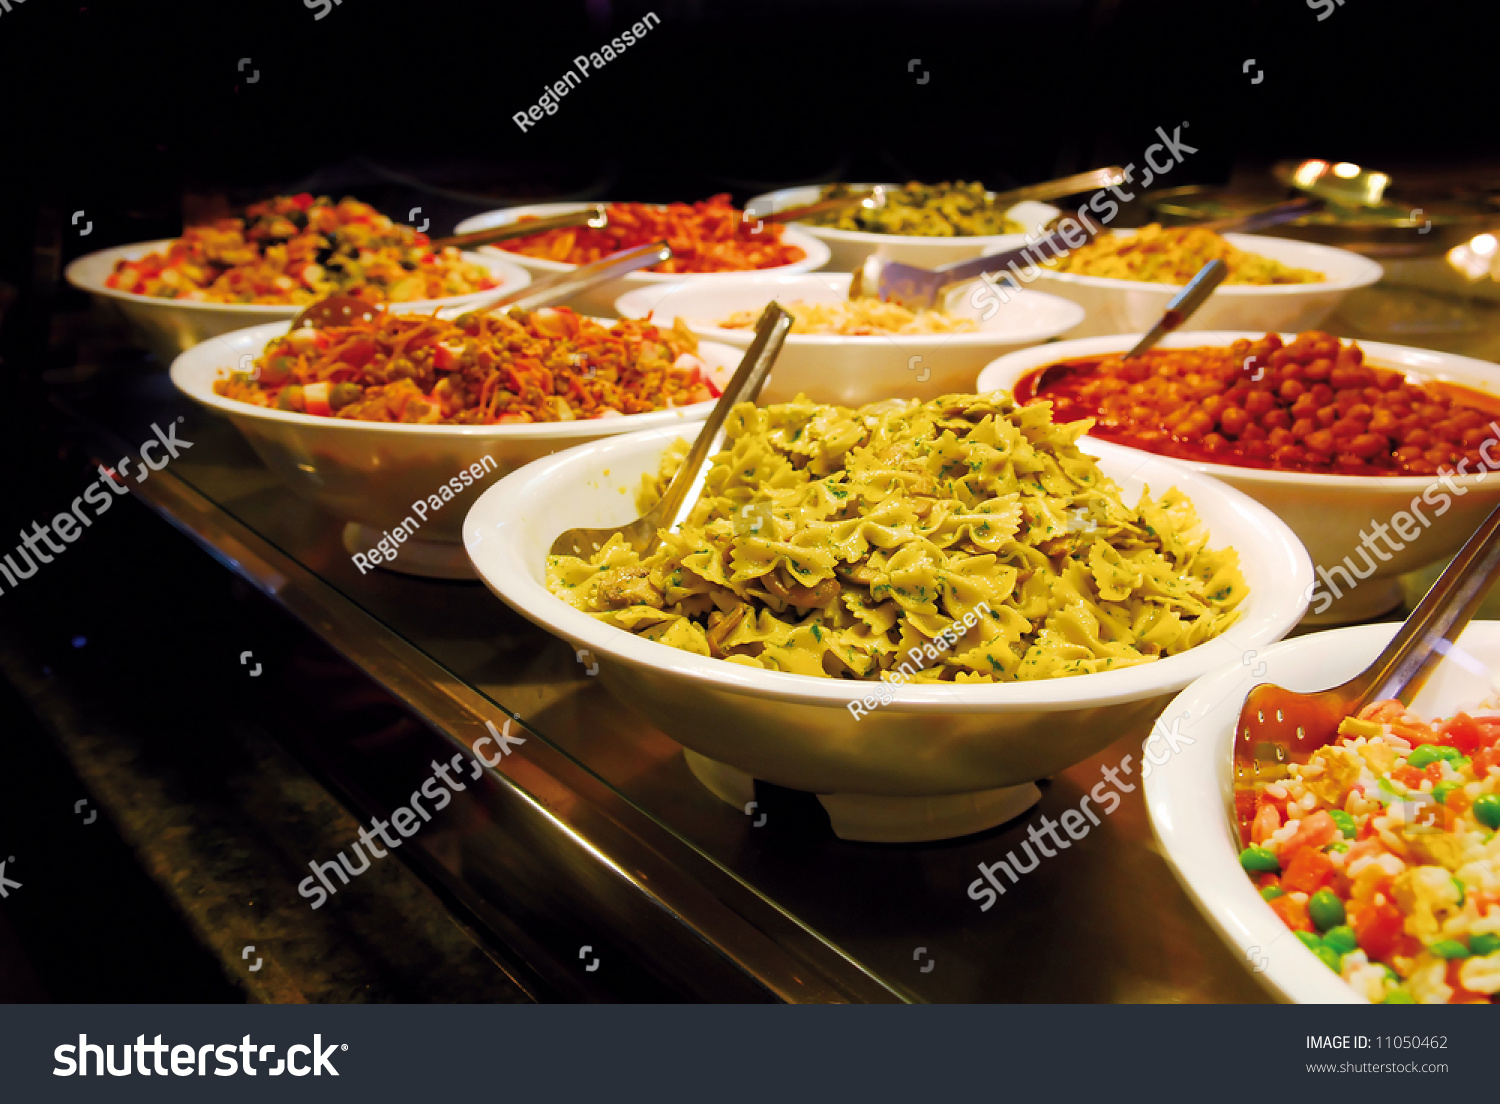 Buffet Butterfly Shaped Pasta Vegetables Meat Stock Photo